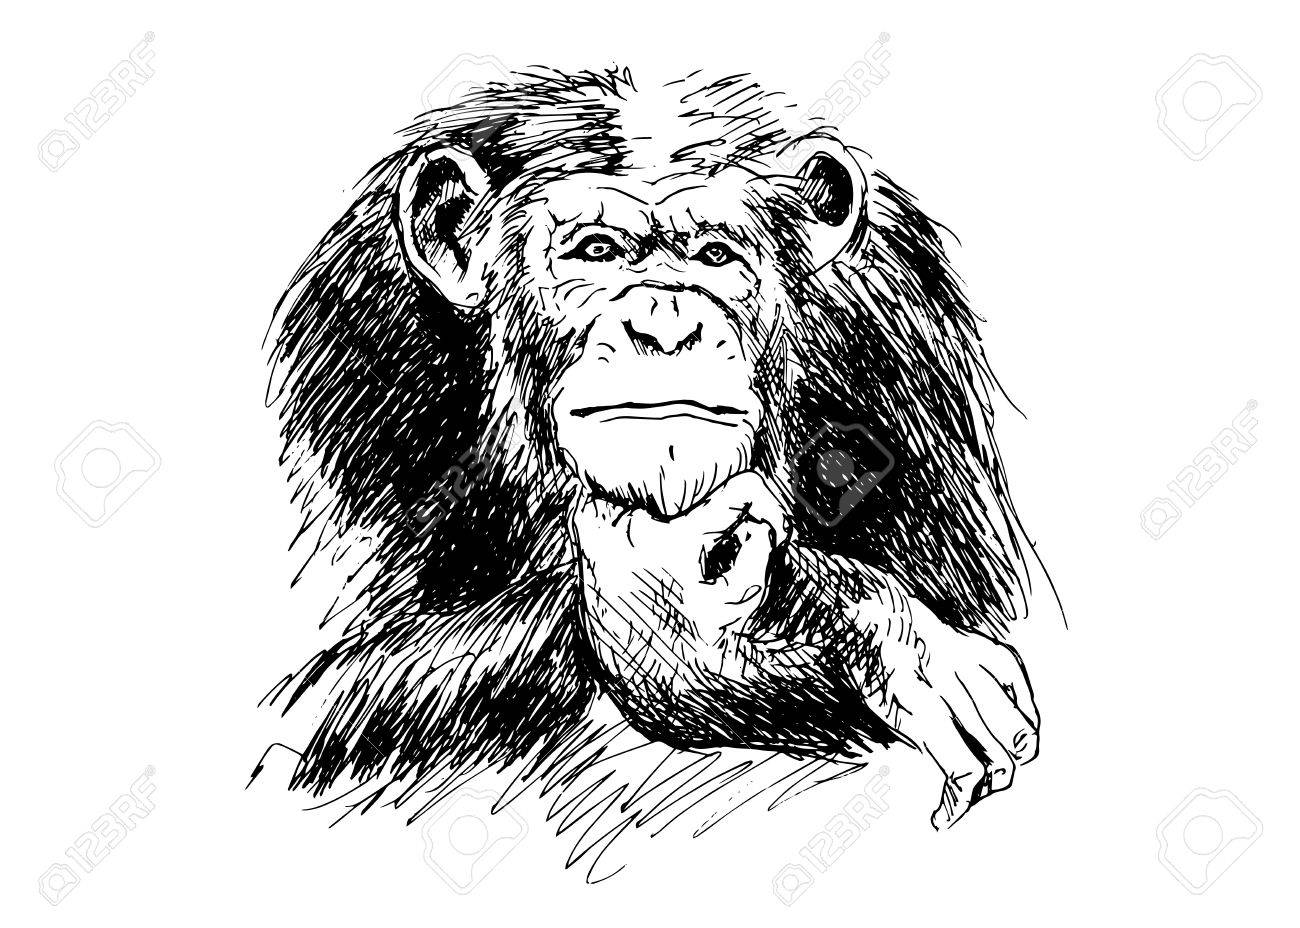 hand drawing chimpanzees royalty free cliparts vectors and stock